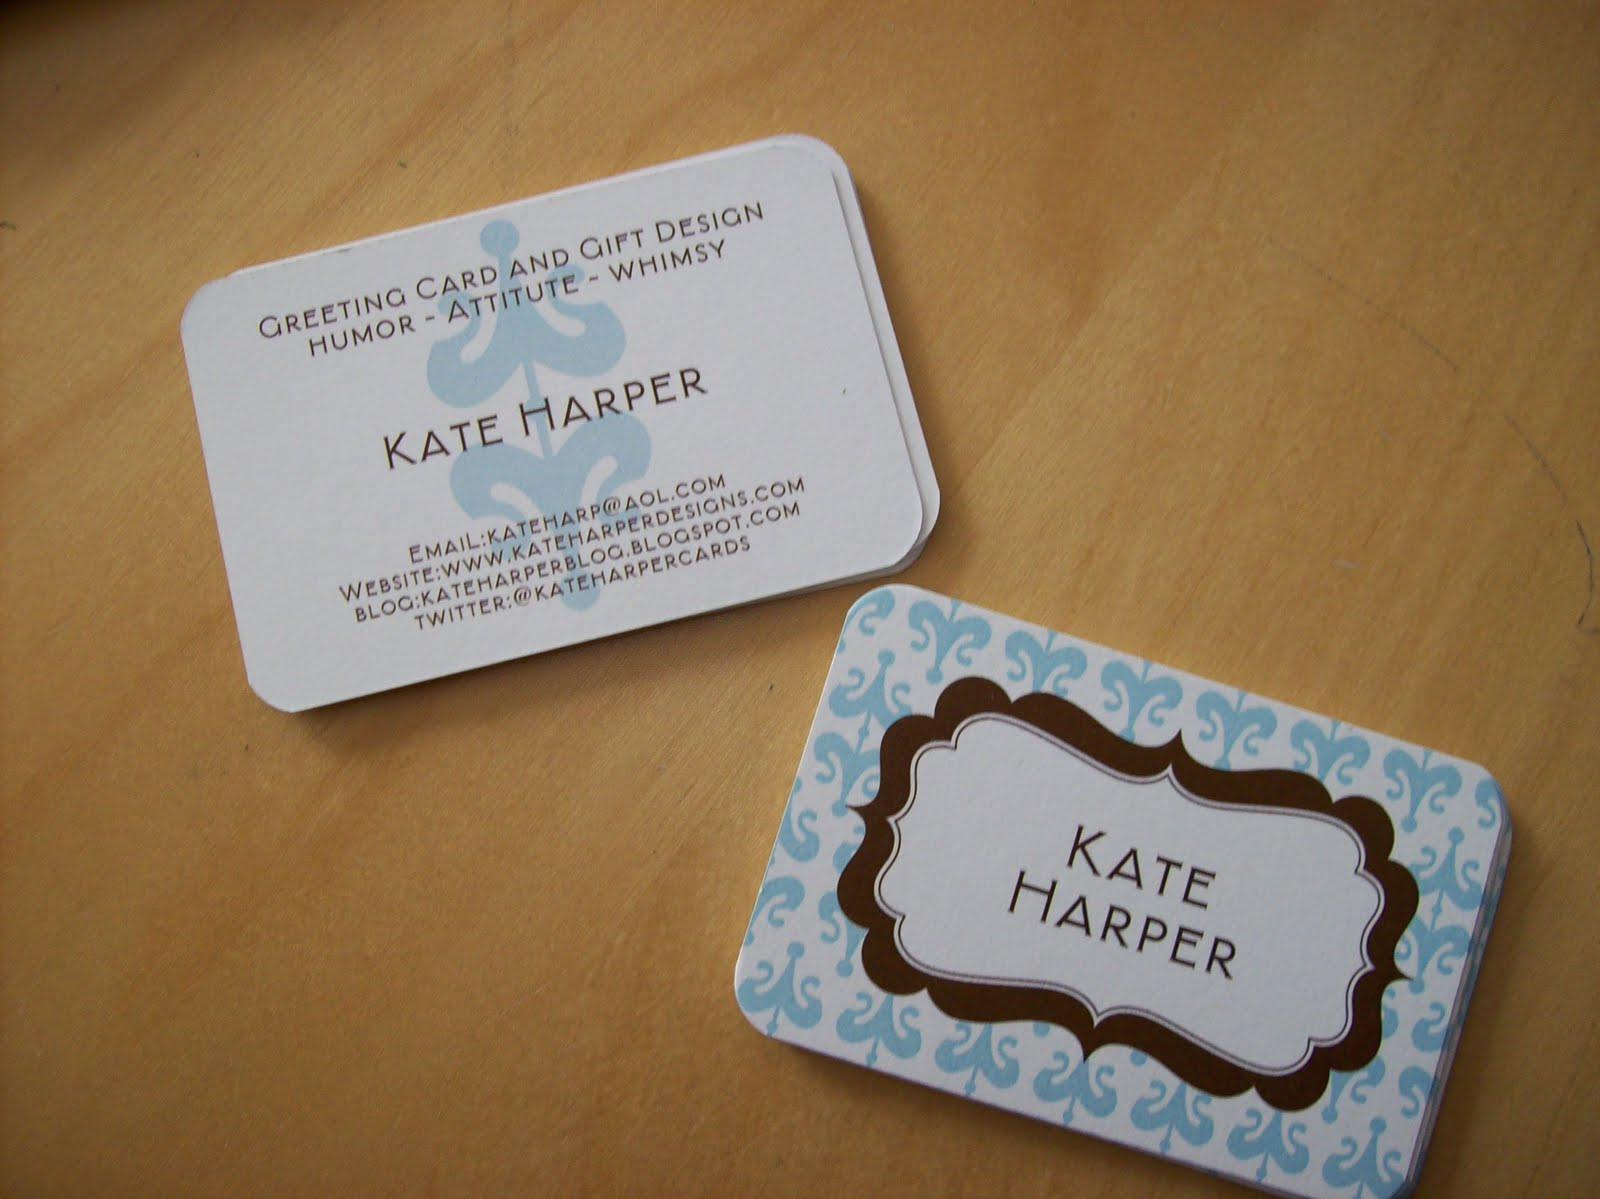 Kate Harper Designs Calling Cards Vs Business Cards